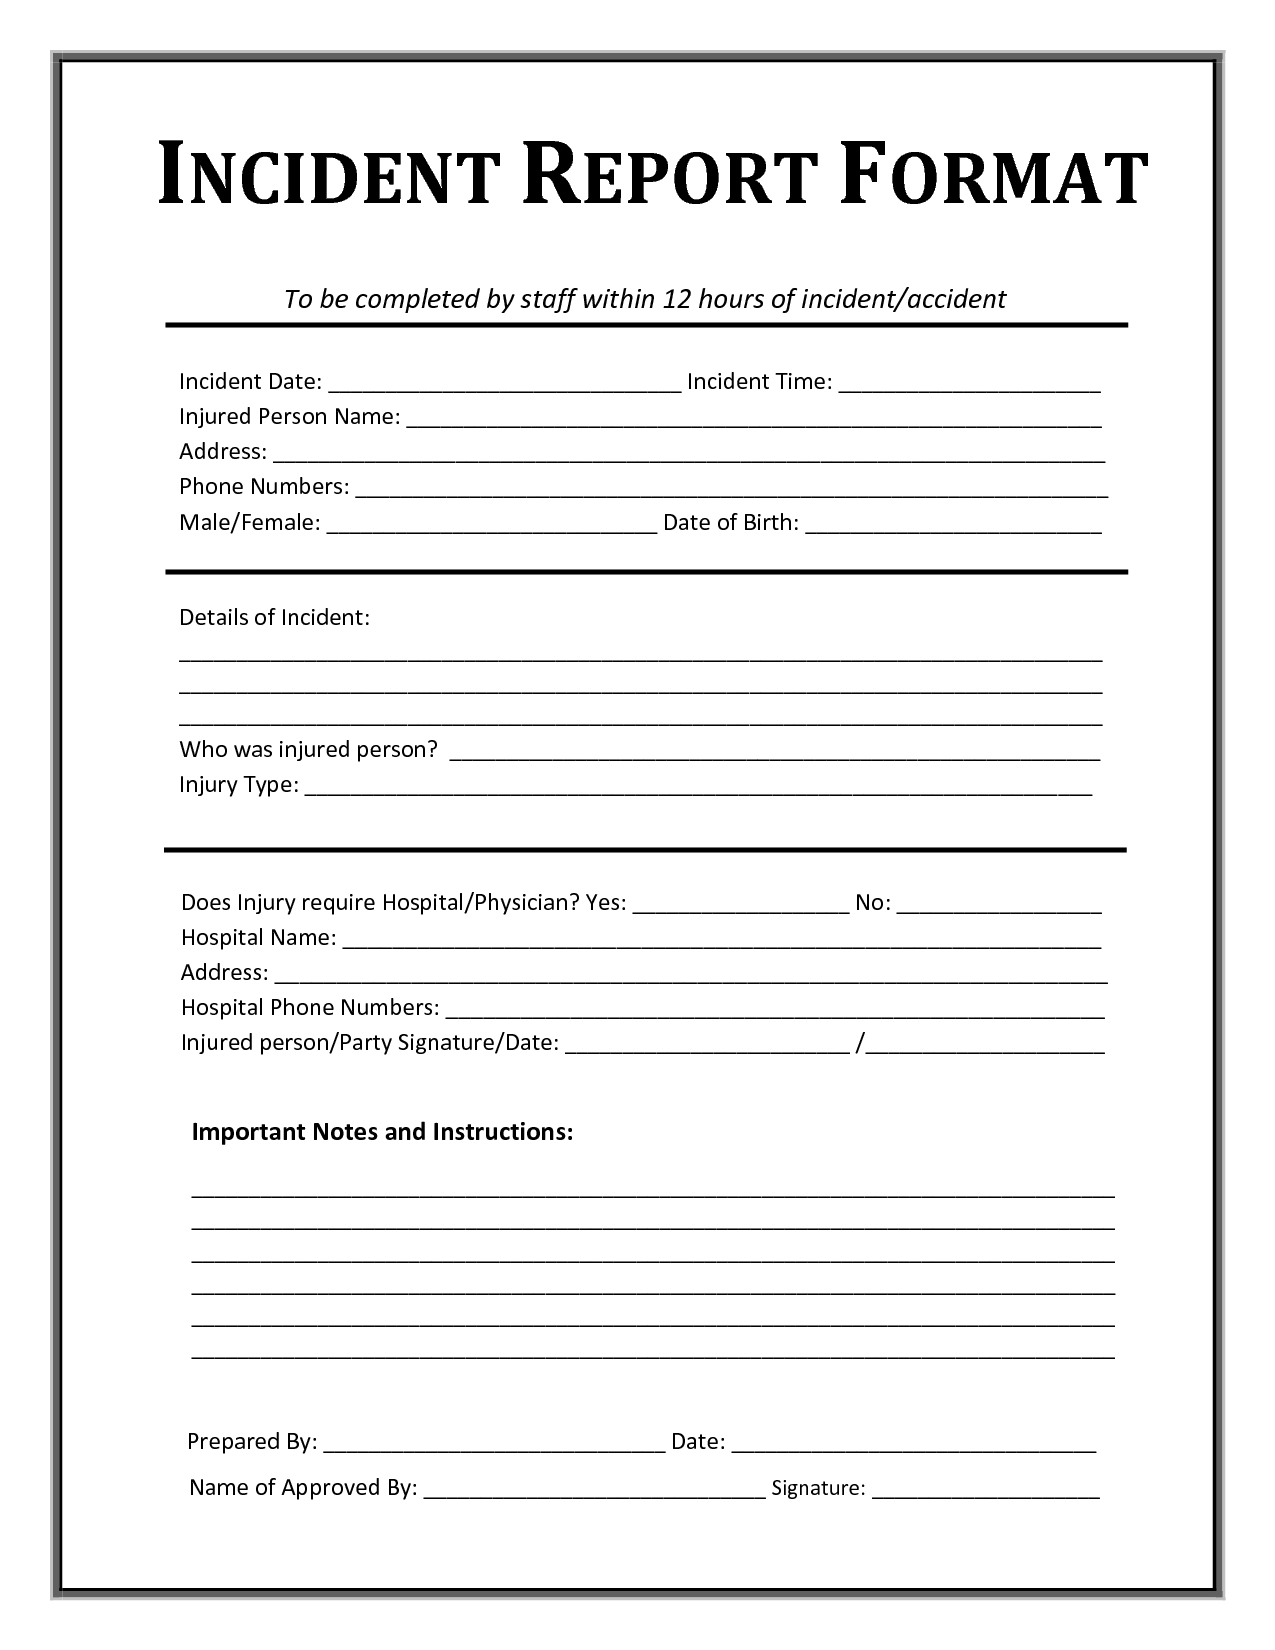 incident report form template after school sign in pinterest incident report report. Black Bedroom Furniture Sets. Home Design Ideas